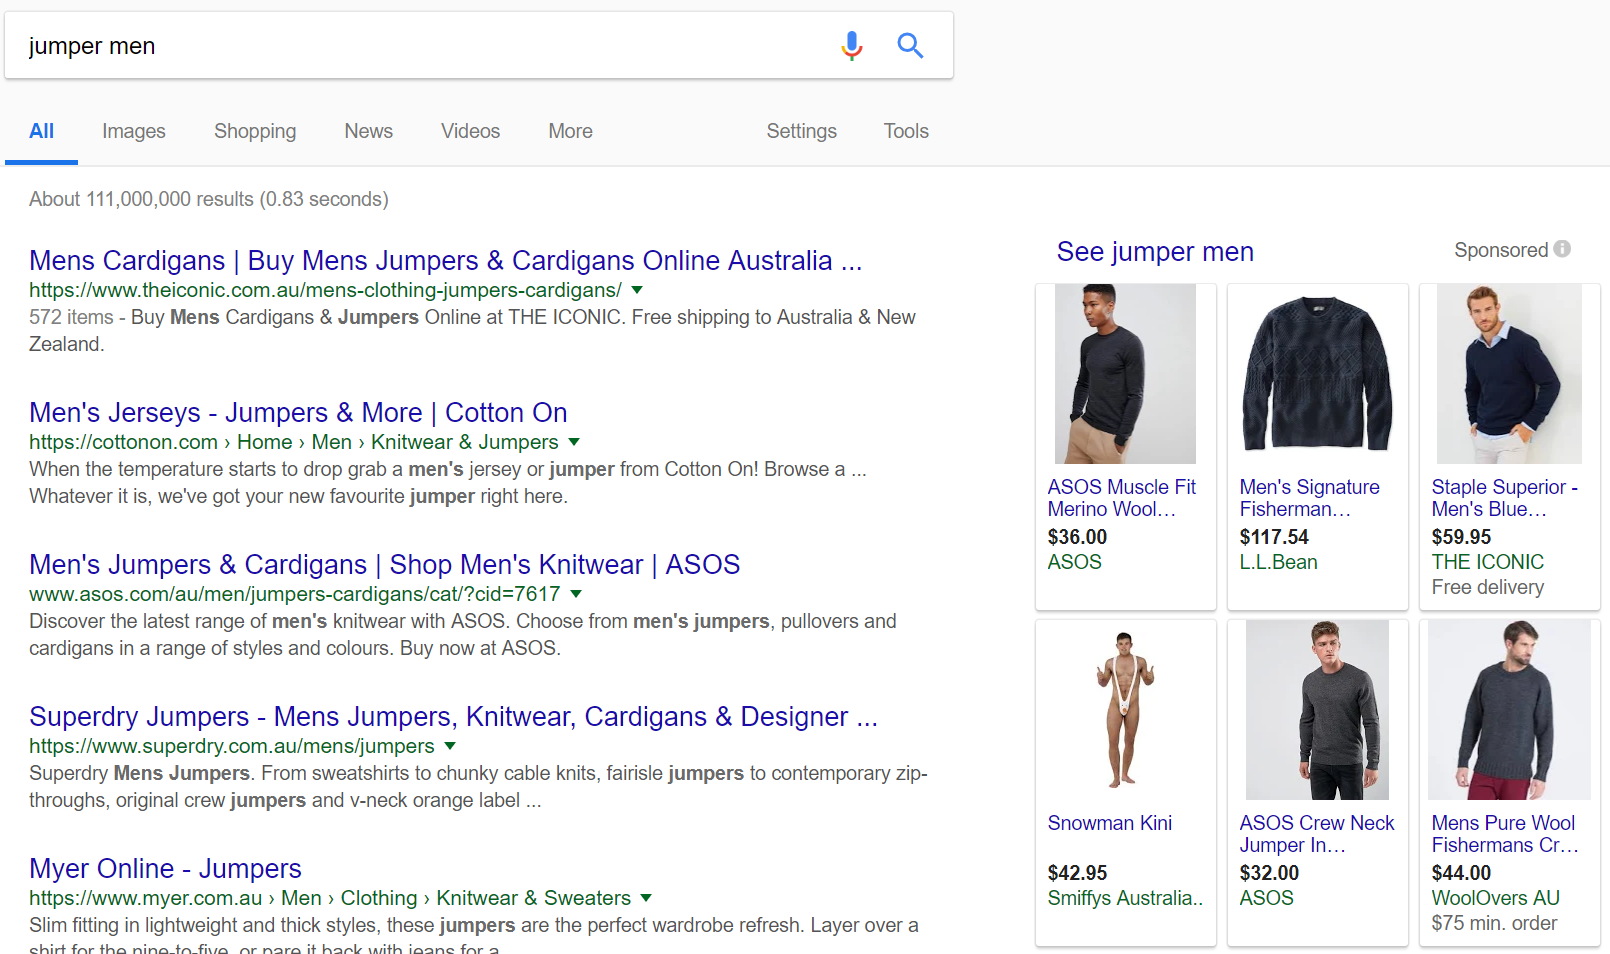 efa3874d58 The Best Way To Create Your Google Shopping Feed in Shopify